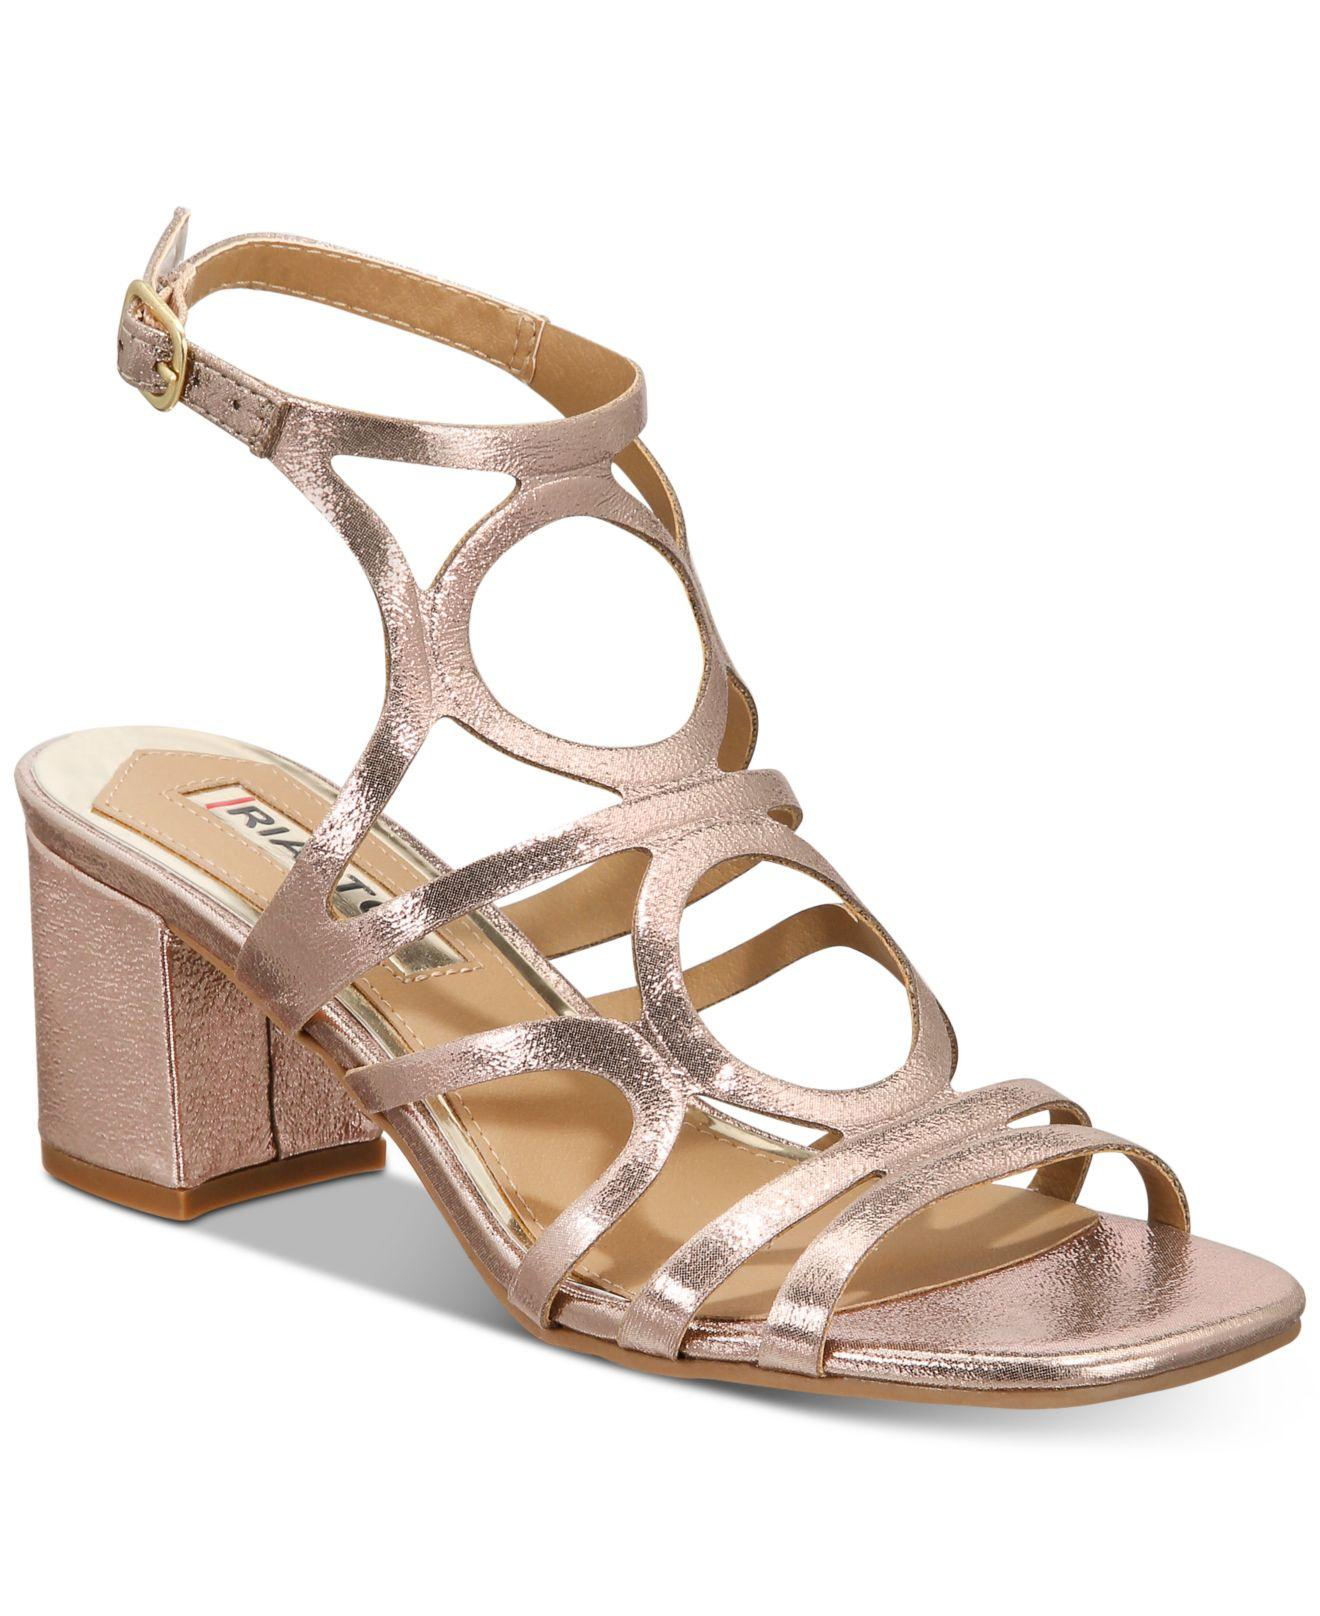 0330f150249 Lyst - Rialto Stanly Sandals